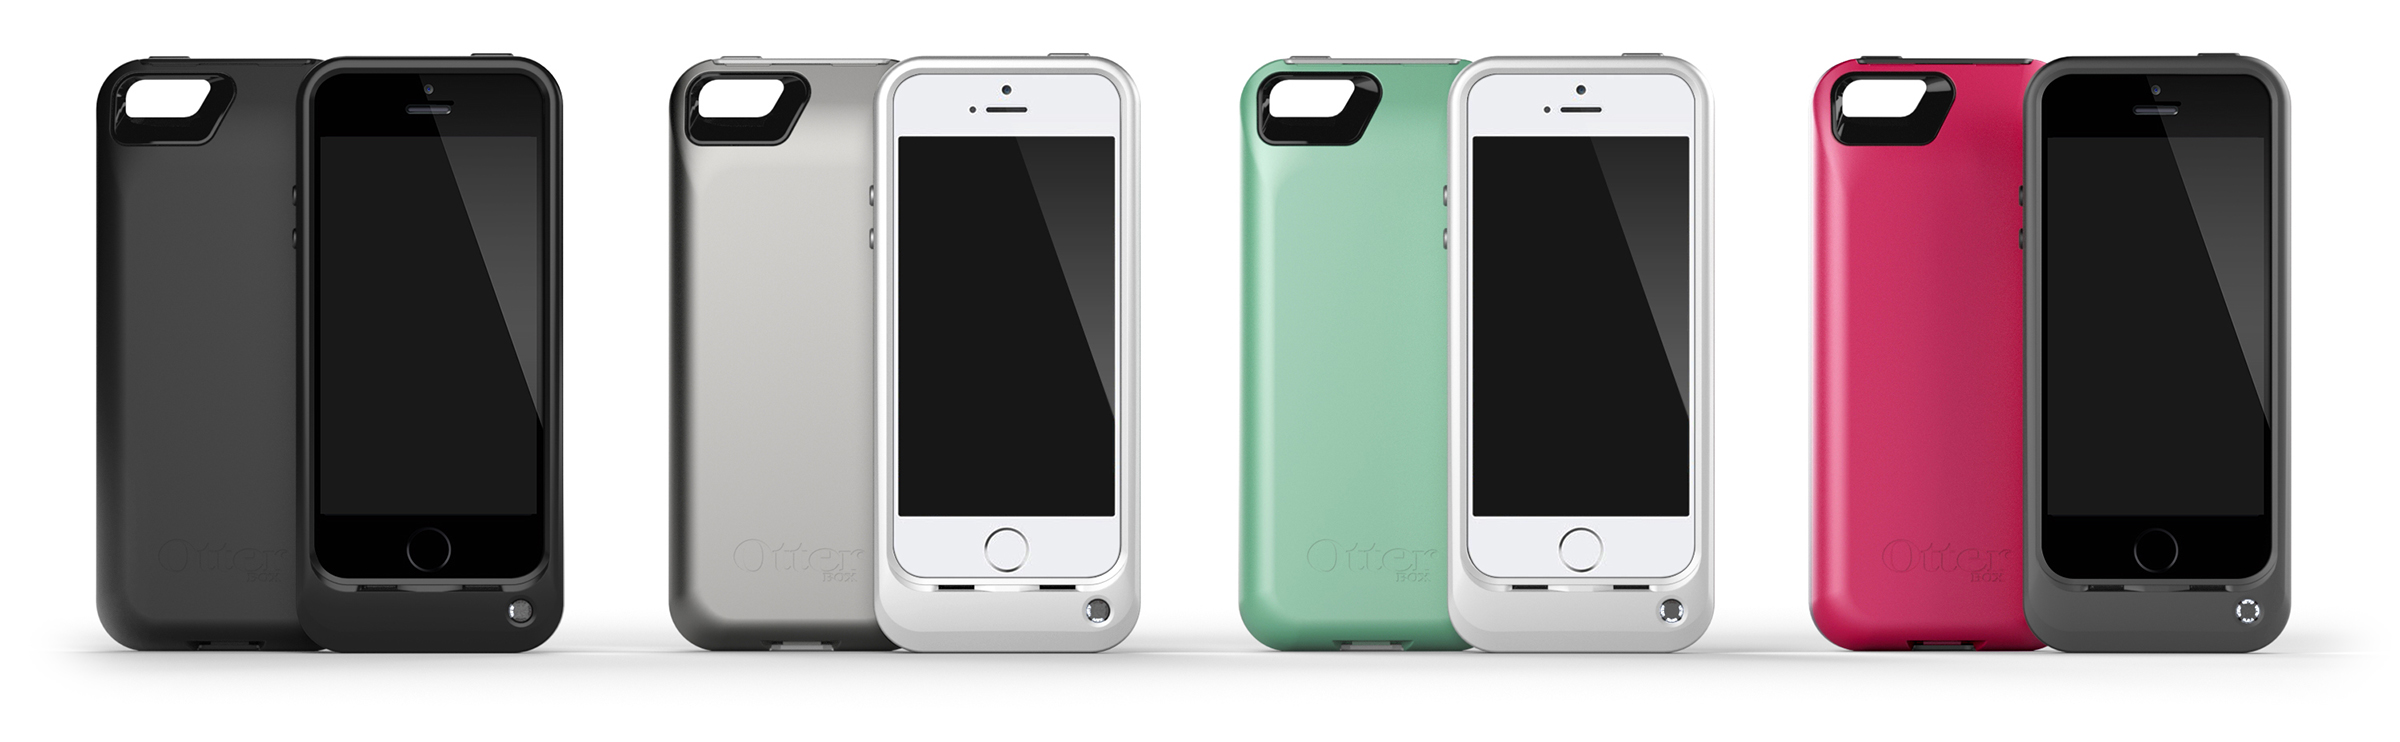 new style 9c449 6e82c Otterbox Reveals Their Resurgence iPhone 5s Battery Case (Video) –